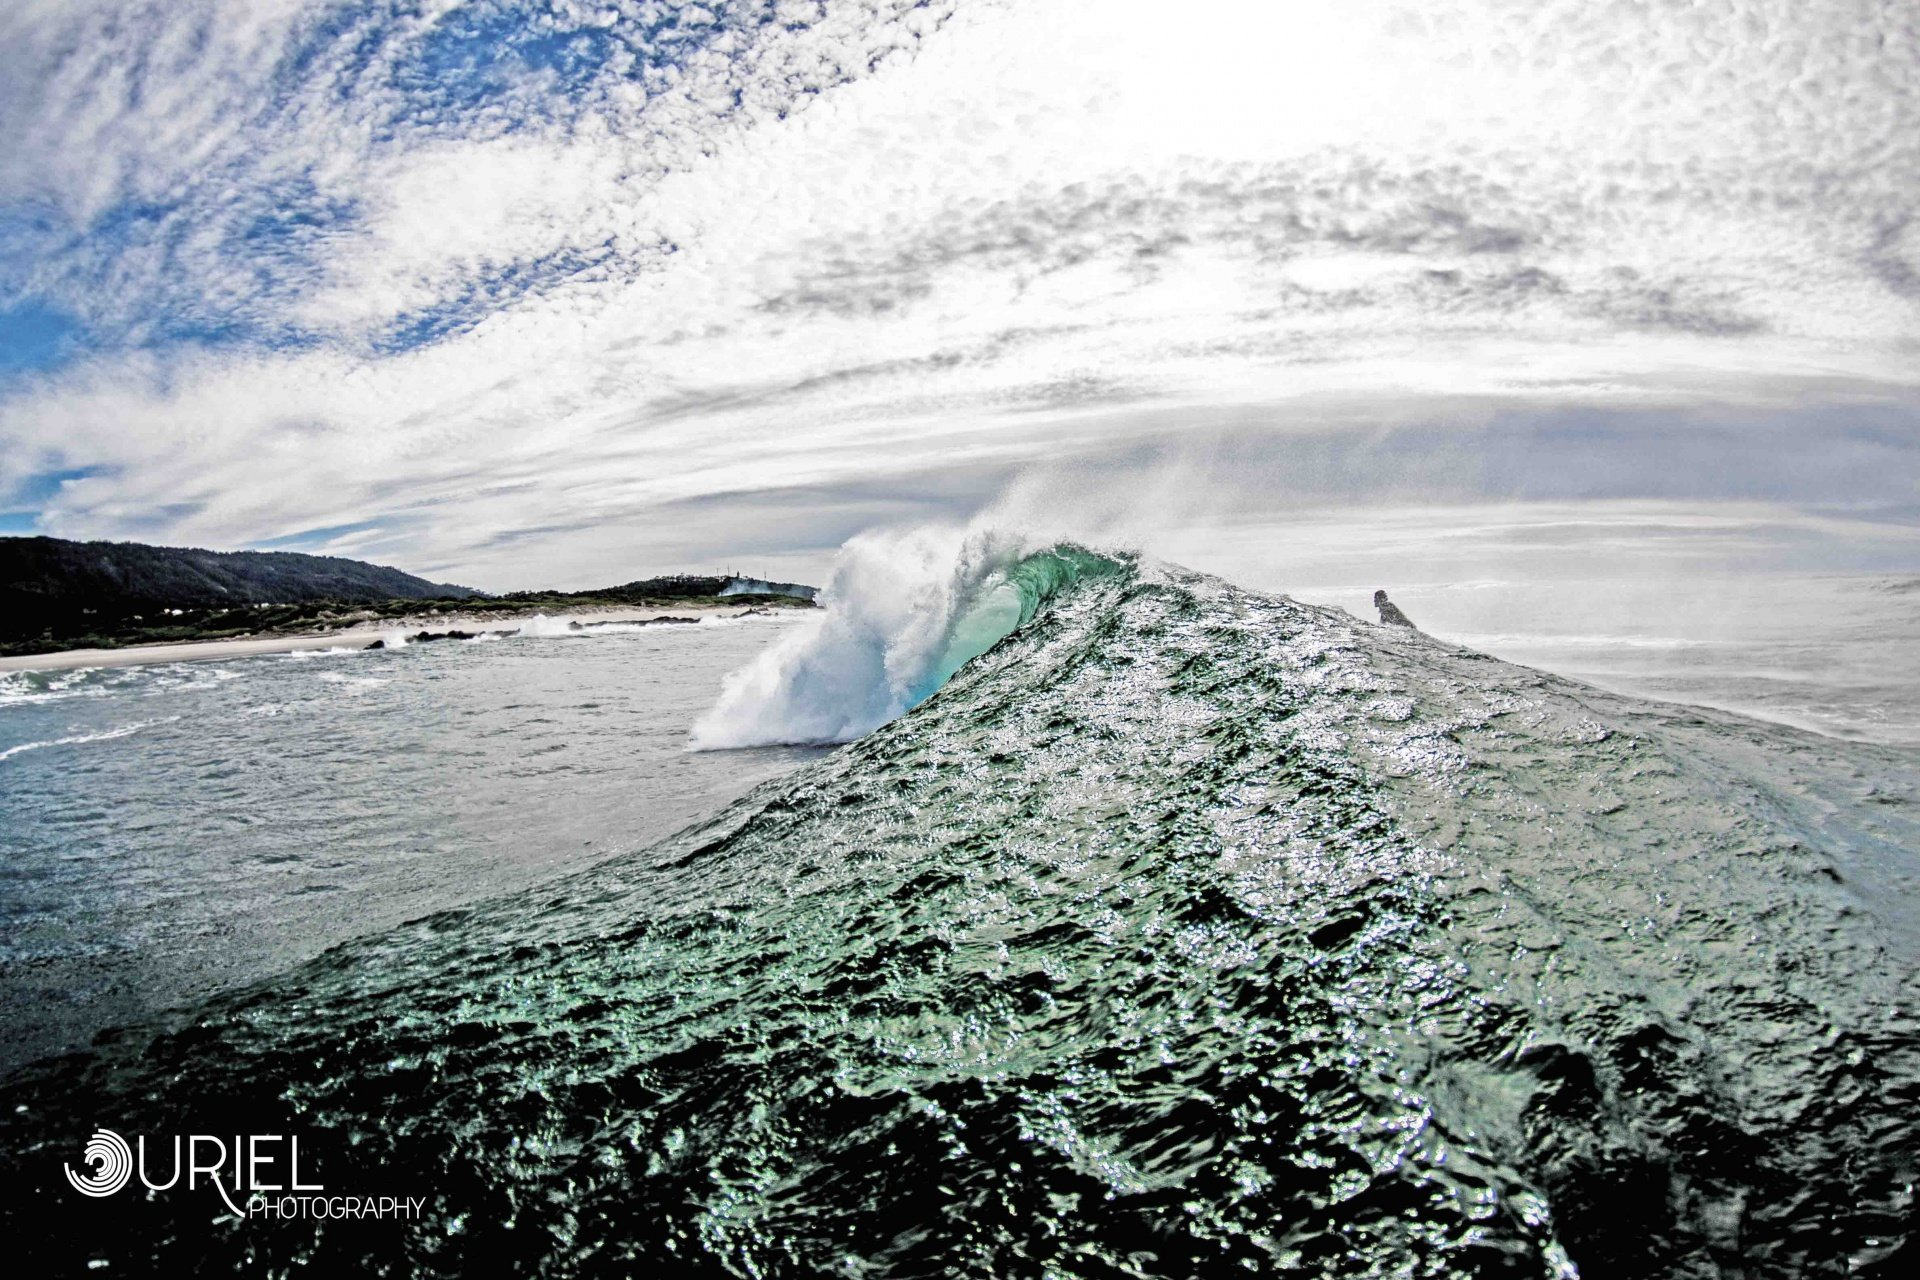 Uriel Surf Photographhy's photo of Afife